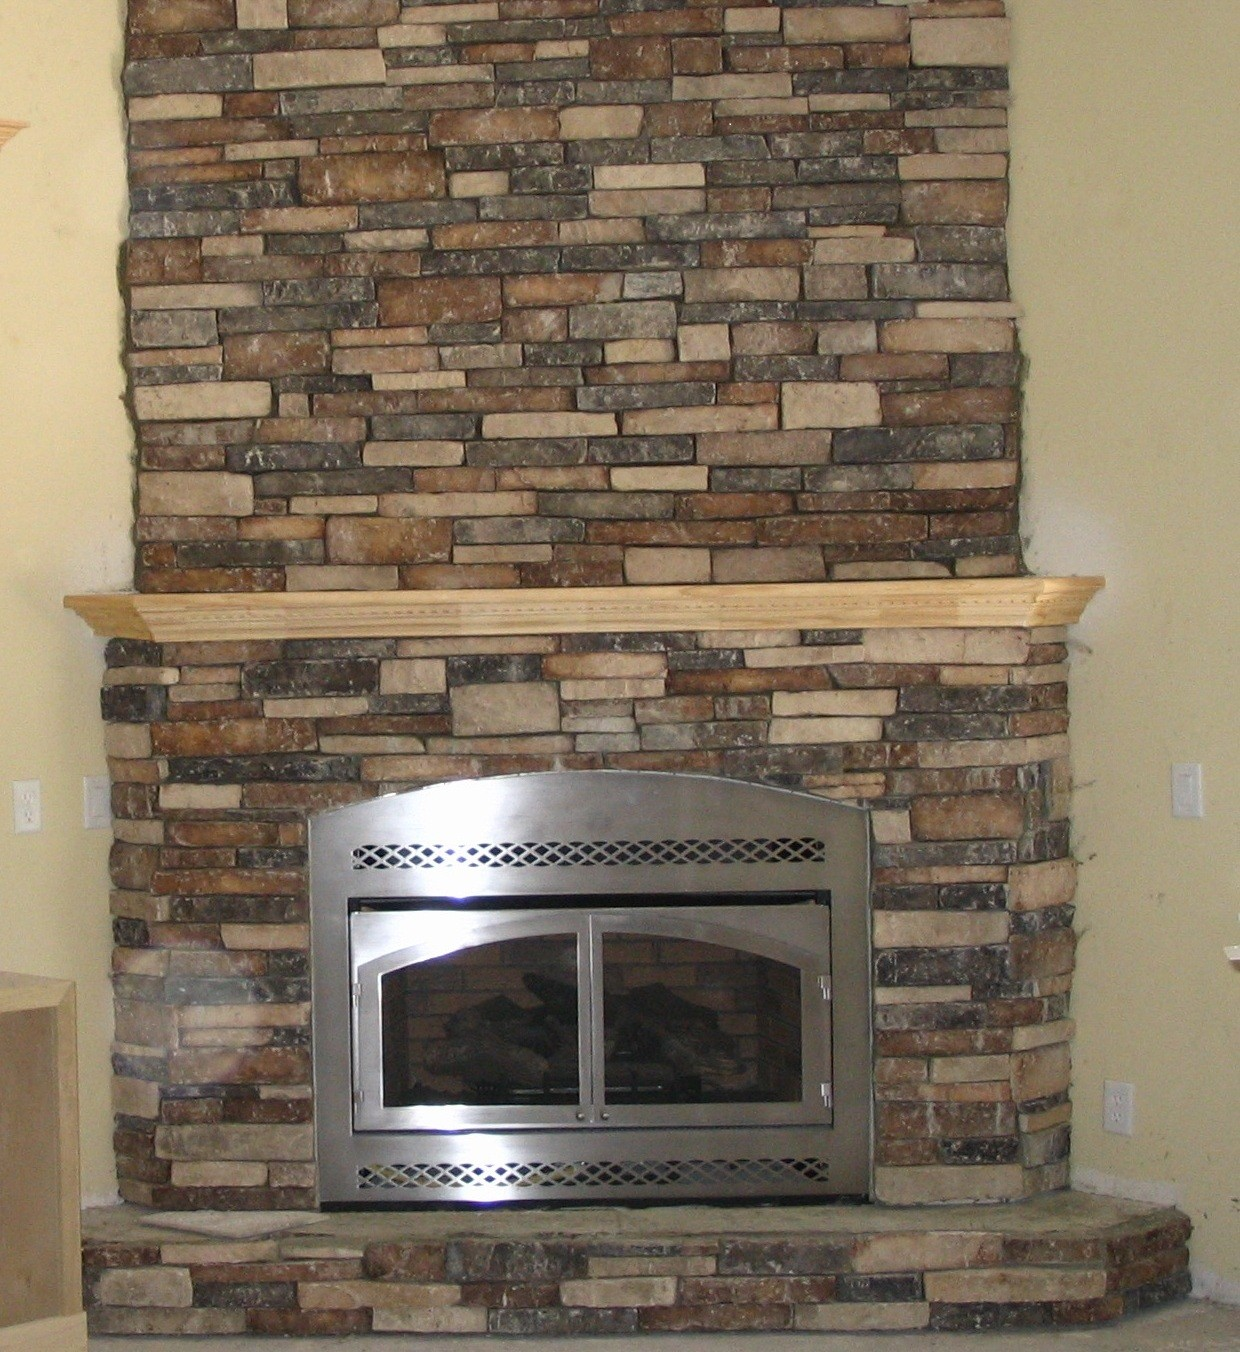 Gas fireplace with glass rocks